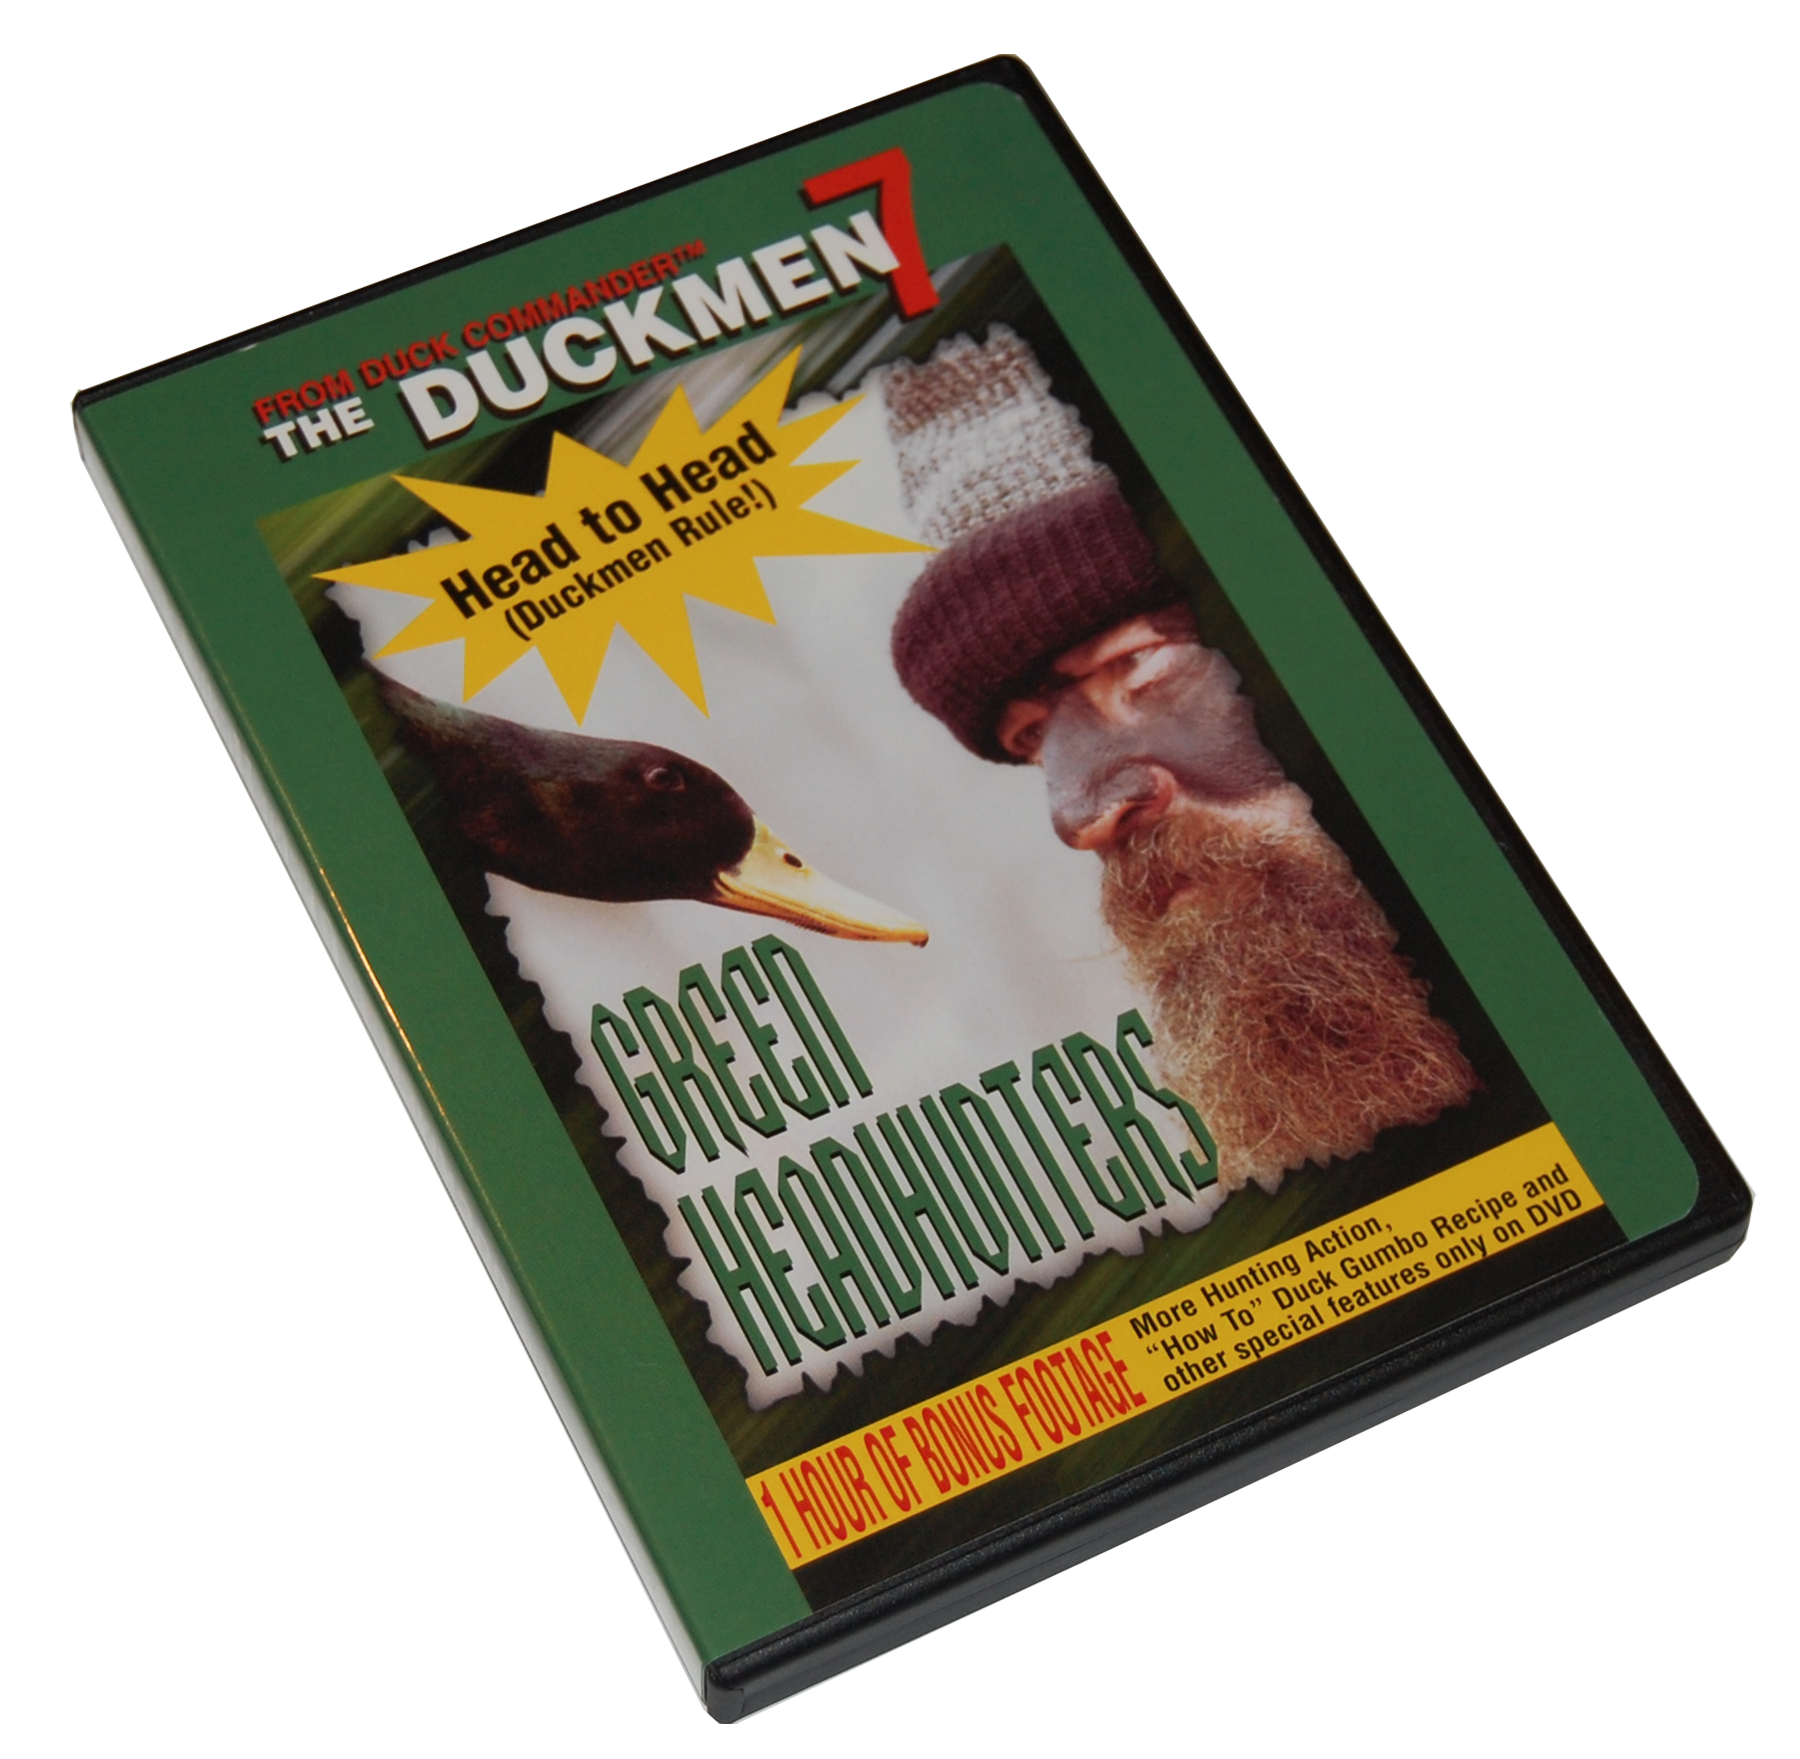 Duck Commander DD7 Duckmen 07 - Green Headhunters DVD